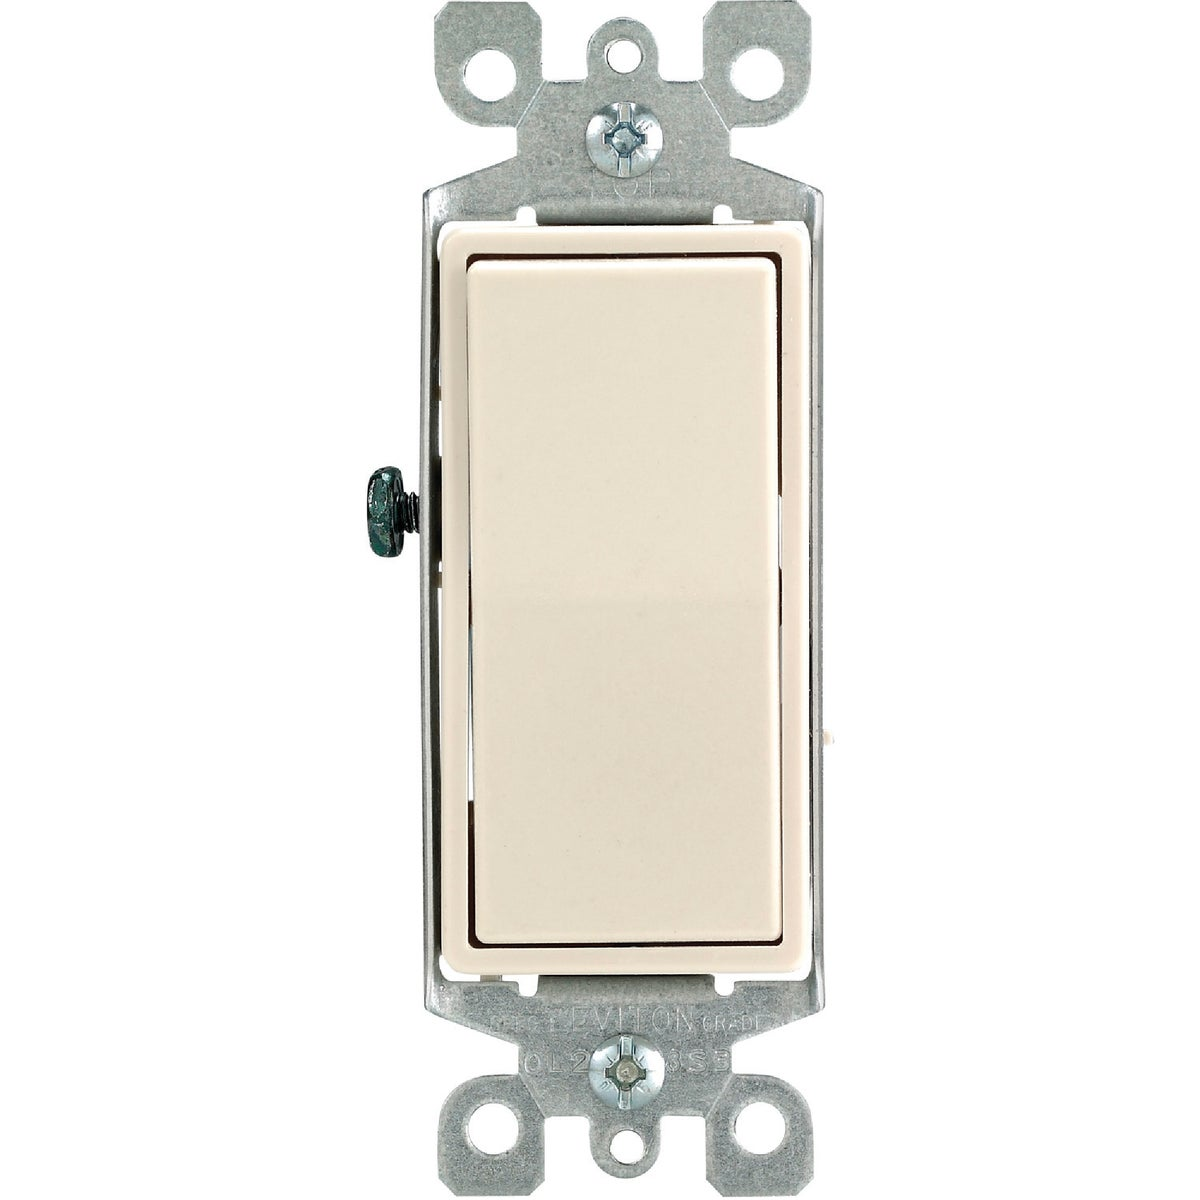 LT ALM 3-WAY GR SWITCH - S16-05603-2TS by Leviton Mfg Co